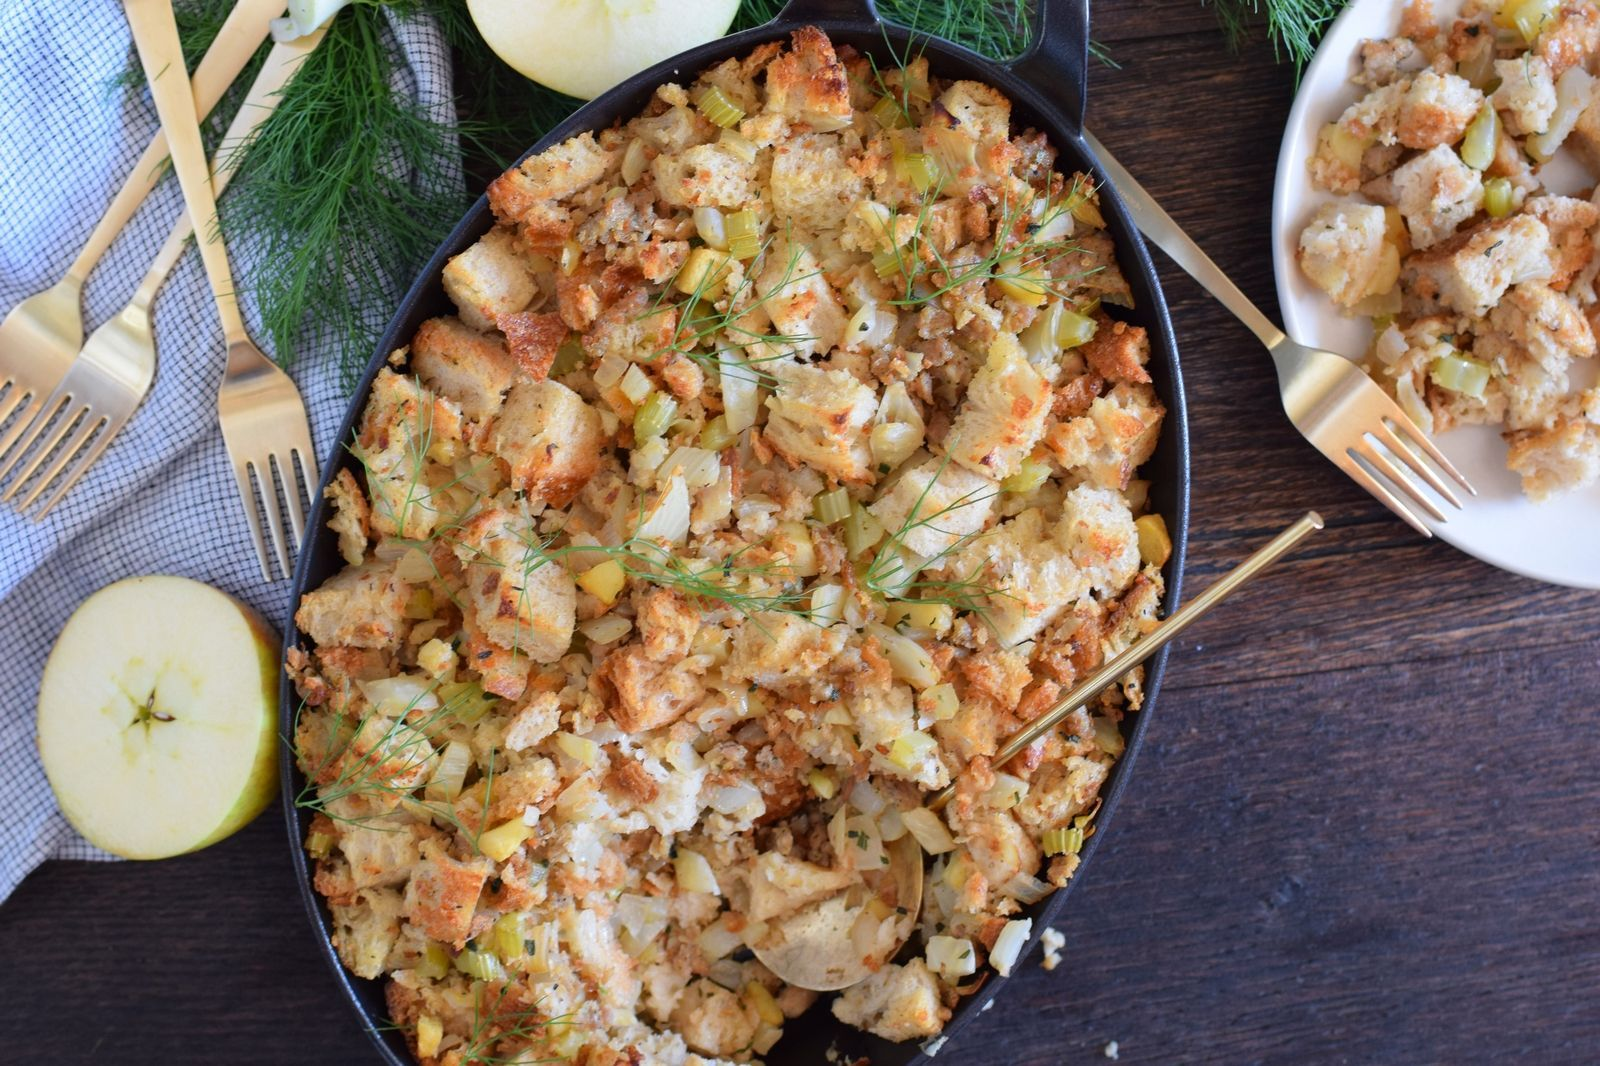 3 Classic Thanksgiving Recipes Your Guests Will Love